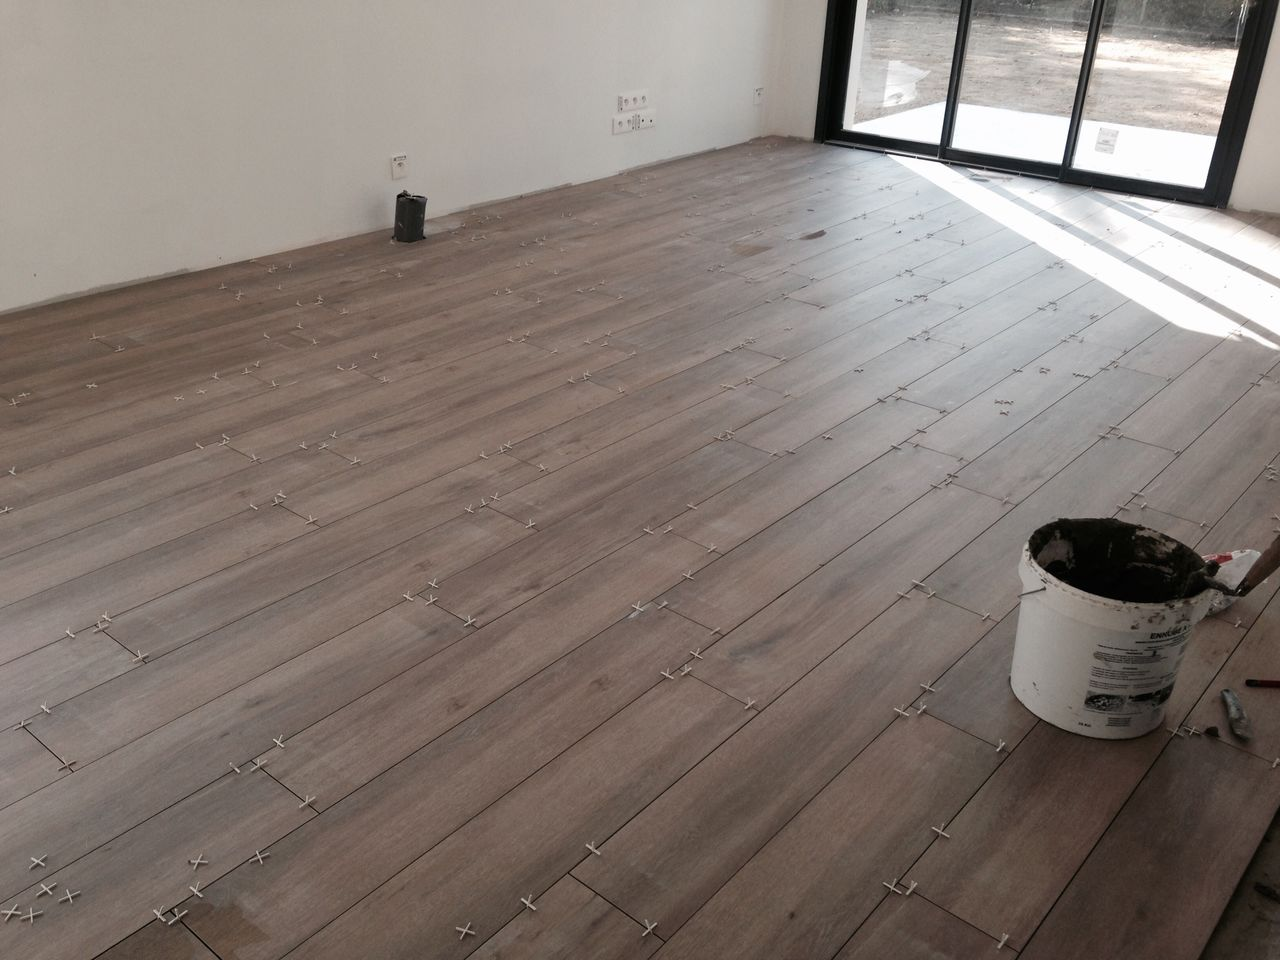 Quelle couleur de joints pour carrelage imitation parquet for Parquet carrelage